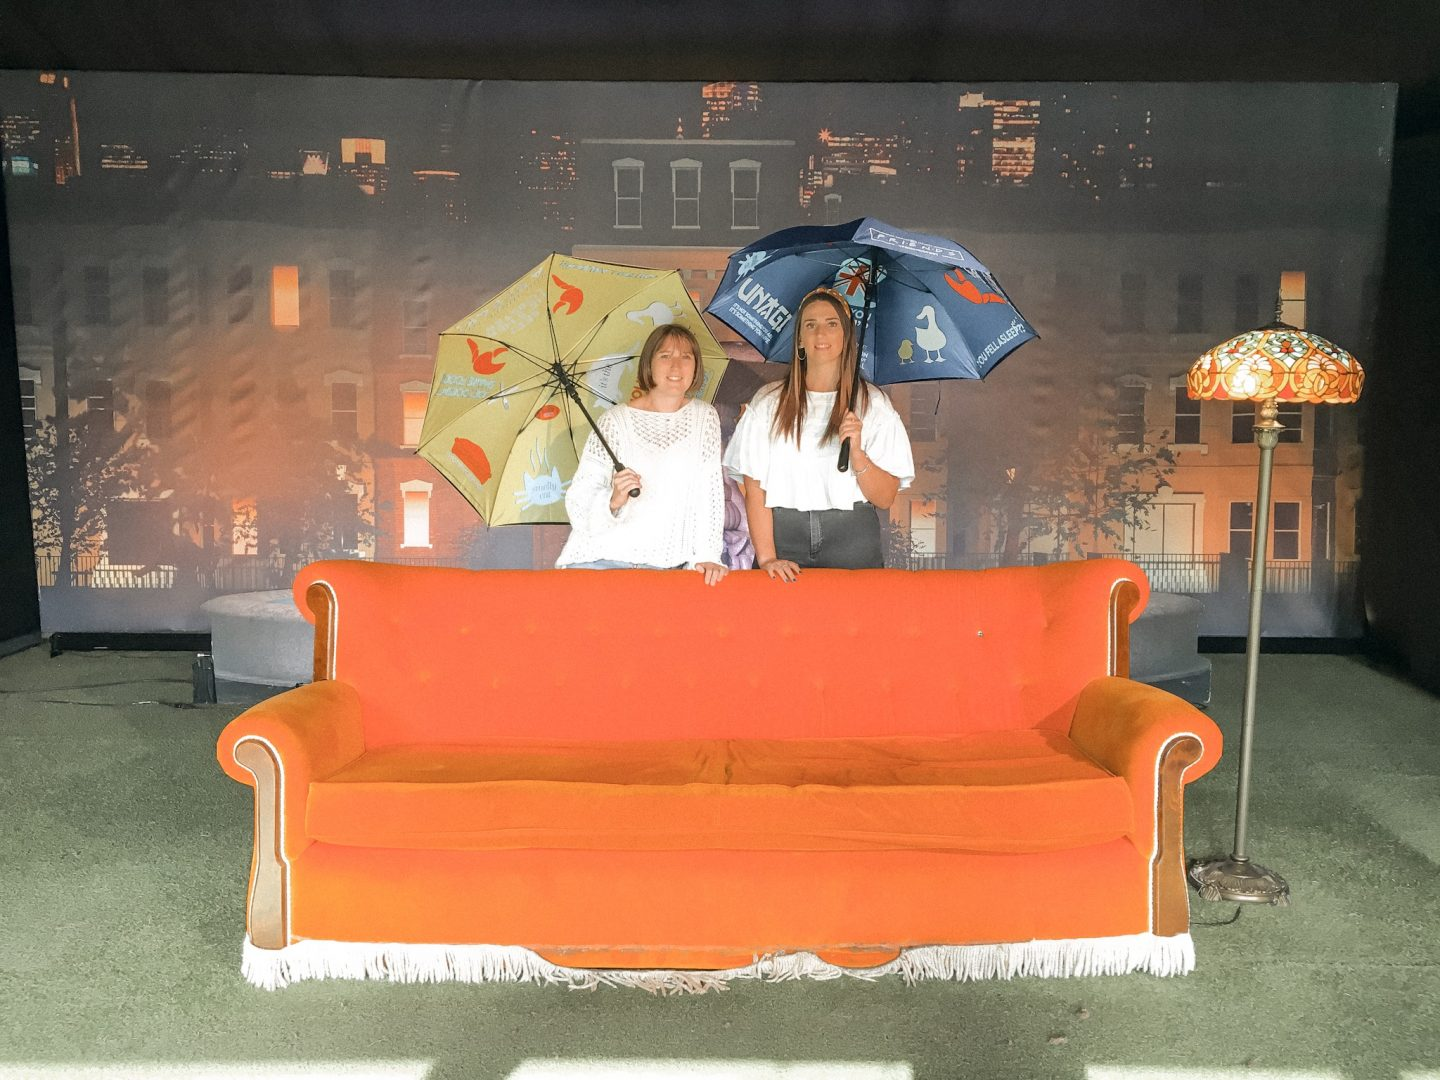 Friendsfest iconic sofa scene